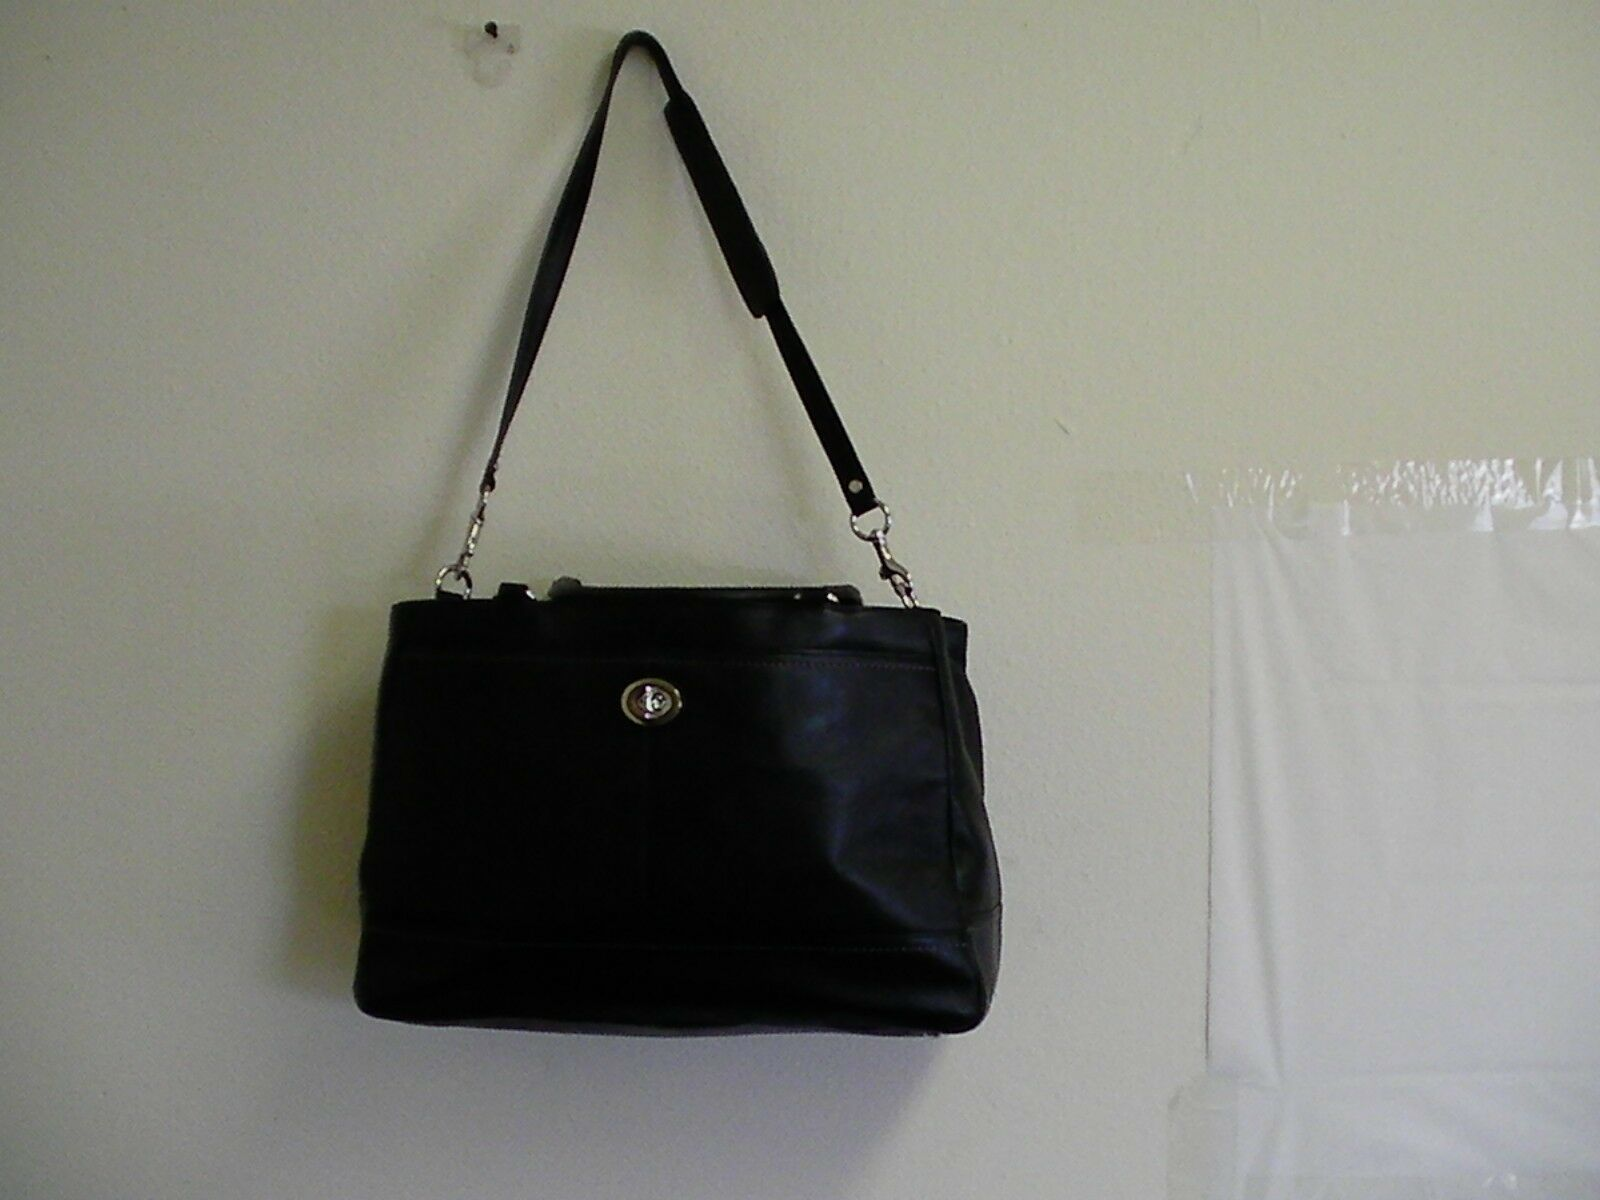 Primary image for NWT coach handbag PARK LEATHER BLACK Silver LARGE CARRYALL ~ F23268